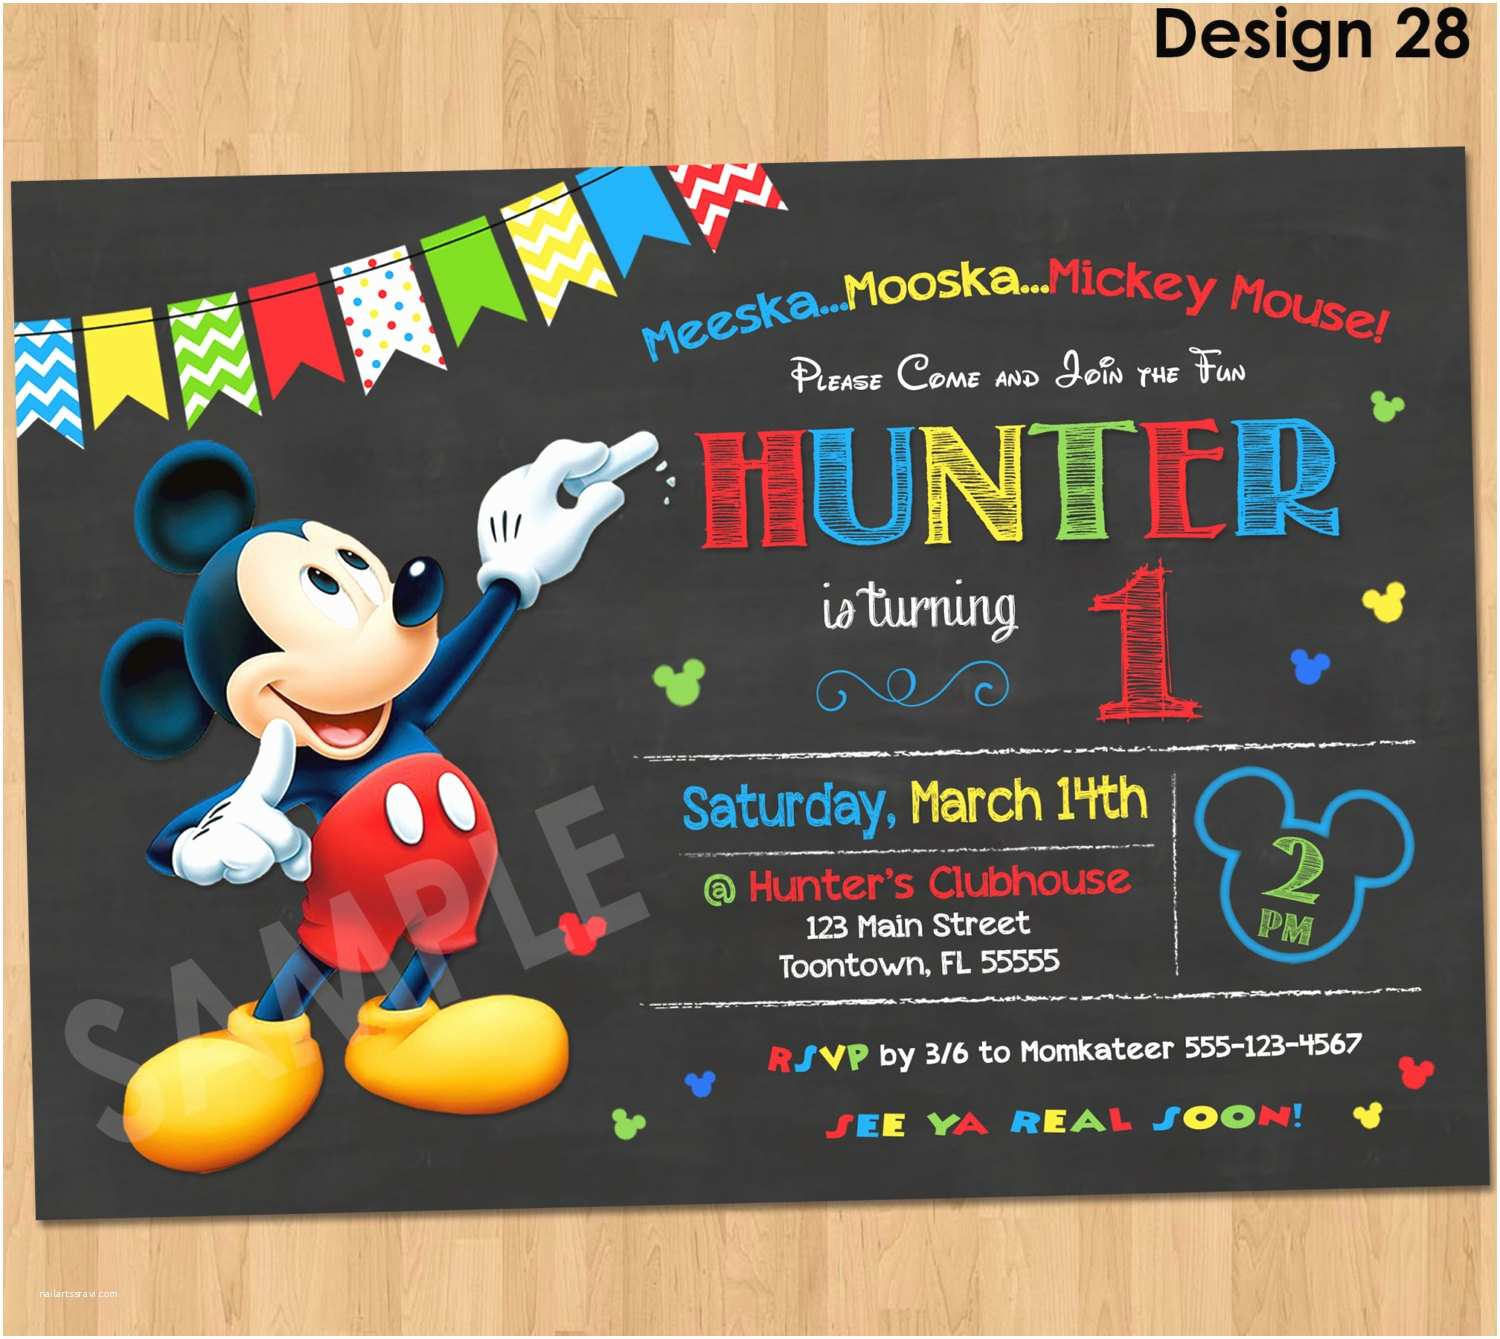 Mickey Mouse Birthday Party Invitations Mickey Mouse Birthday Invitation Mickey Mouse Clubhouse